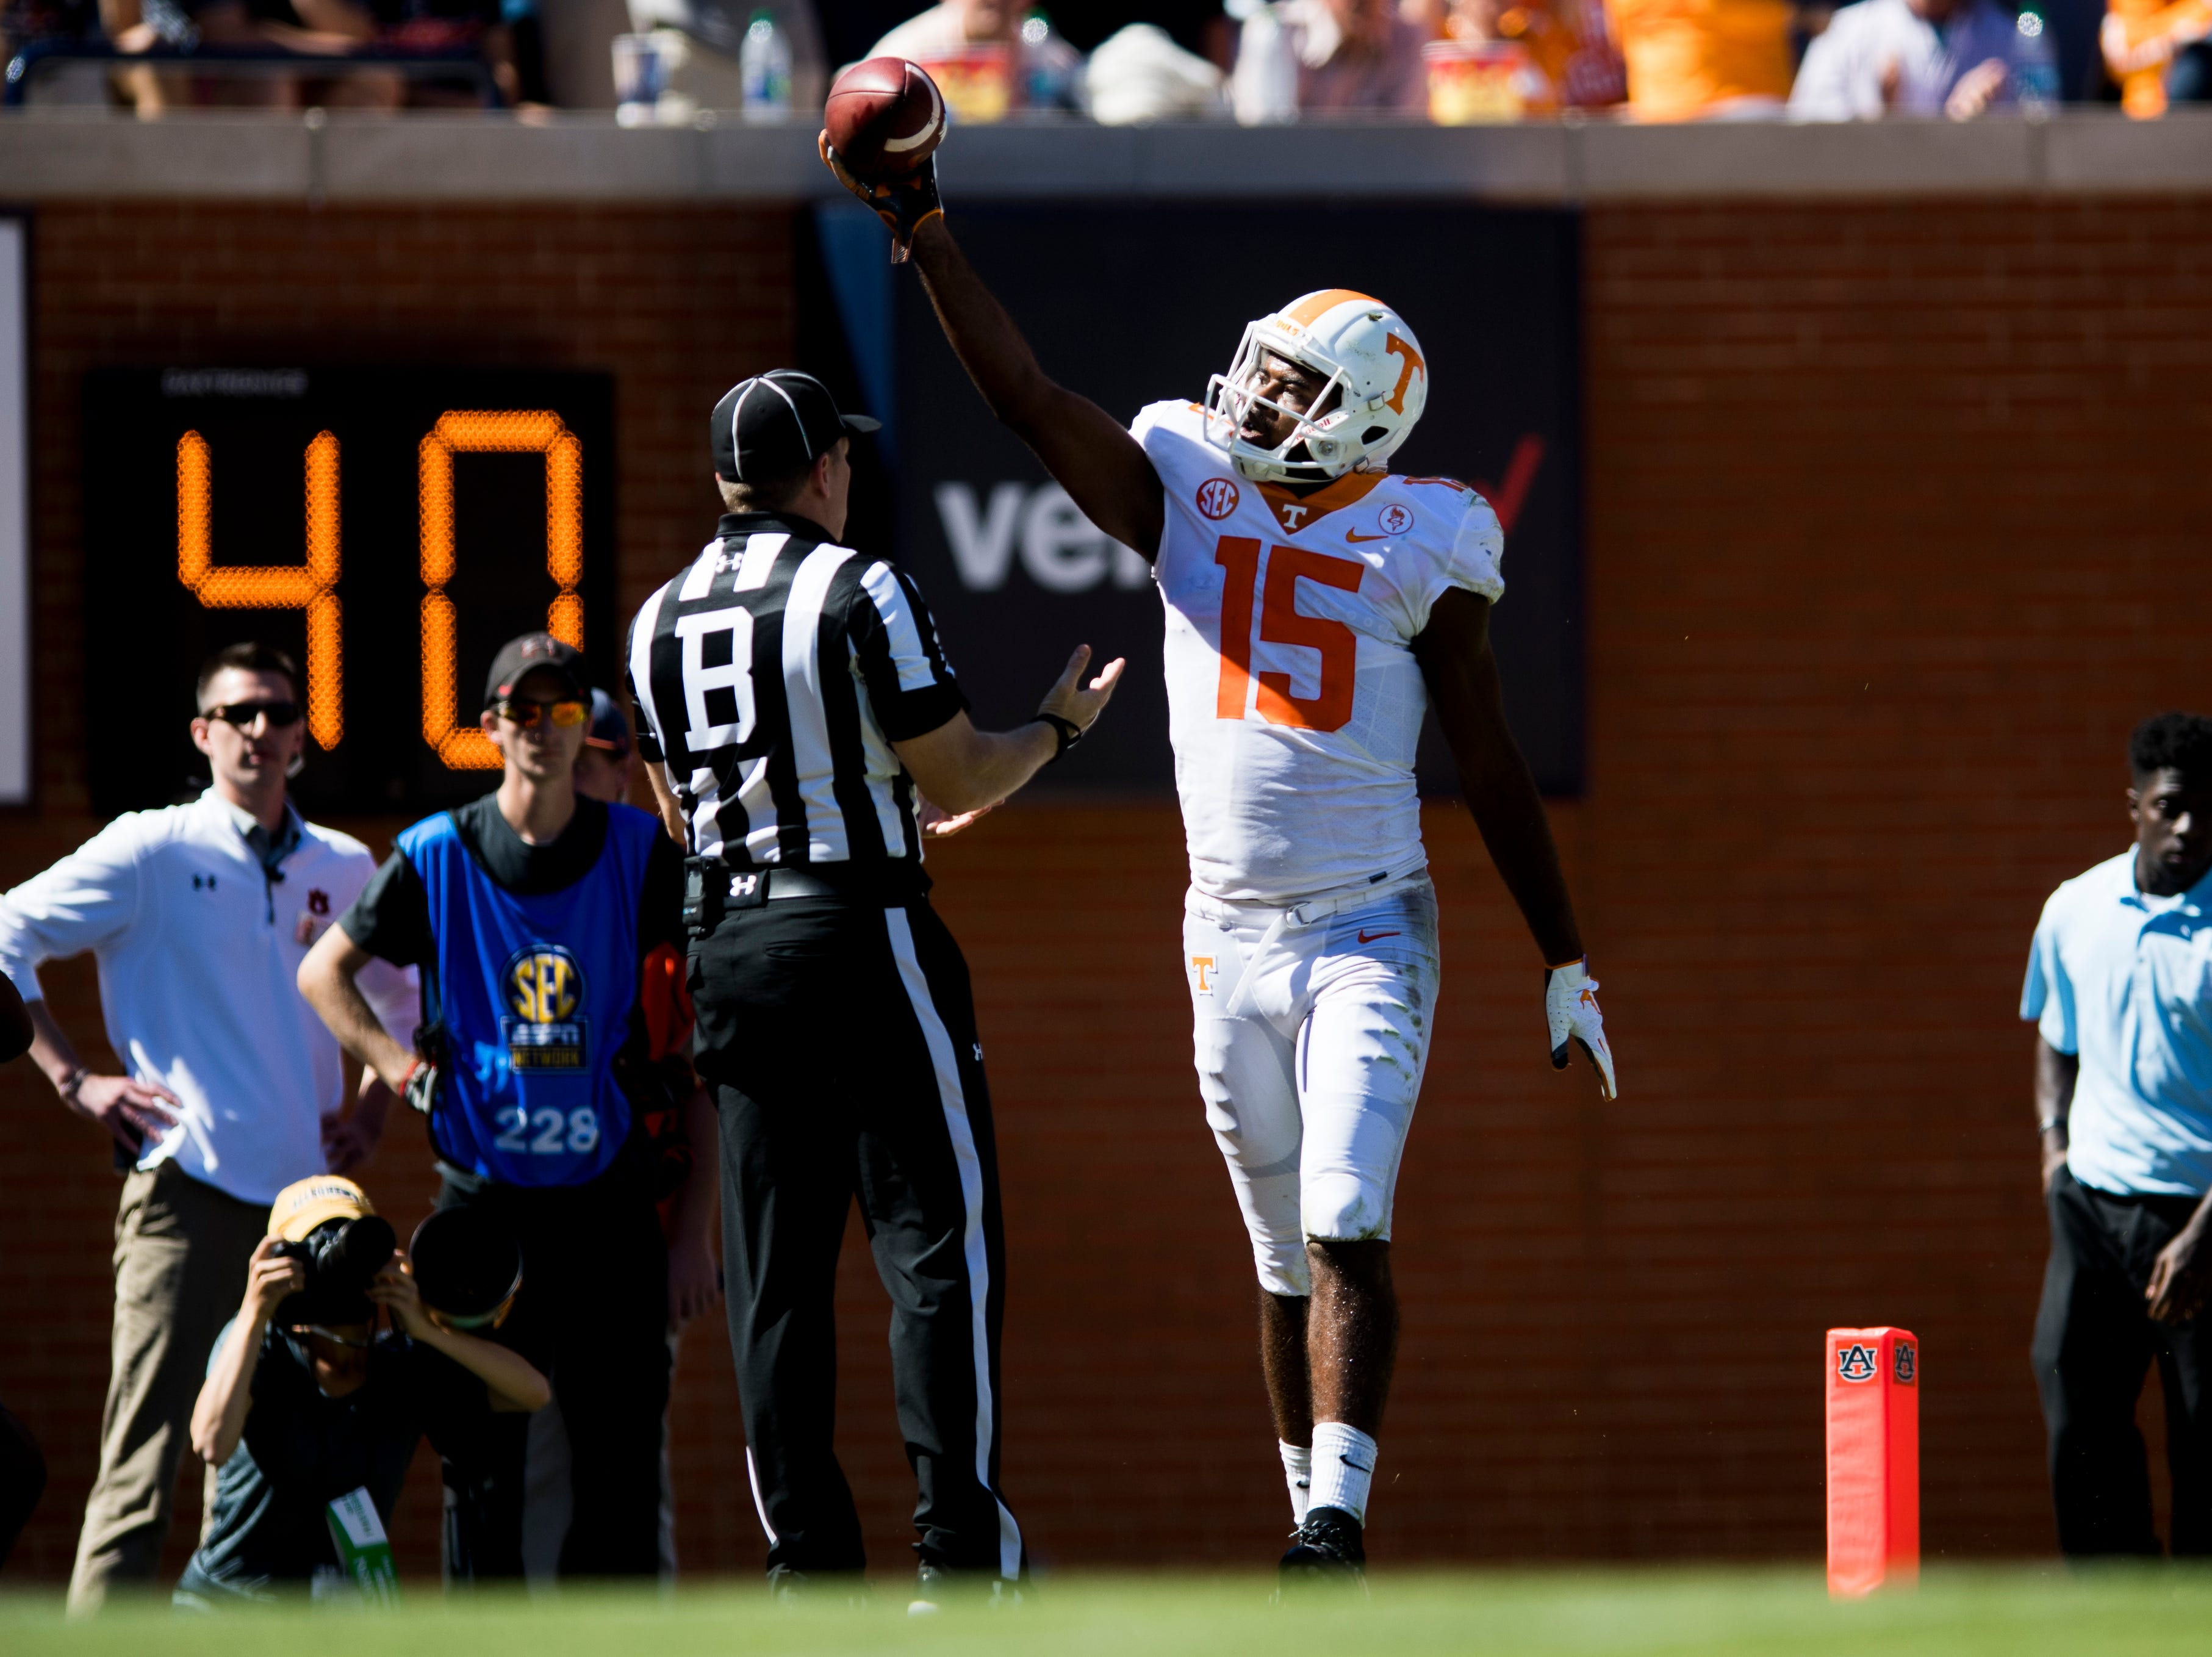 Tennessee wide receiver Jauan Jennings (15) scores a touchdown during a game between Tennessee and Auburn at Jordan-Hare Stadium in Auburn, Alabama on Saturday, October 13, 2018.